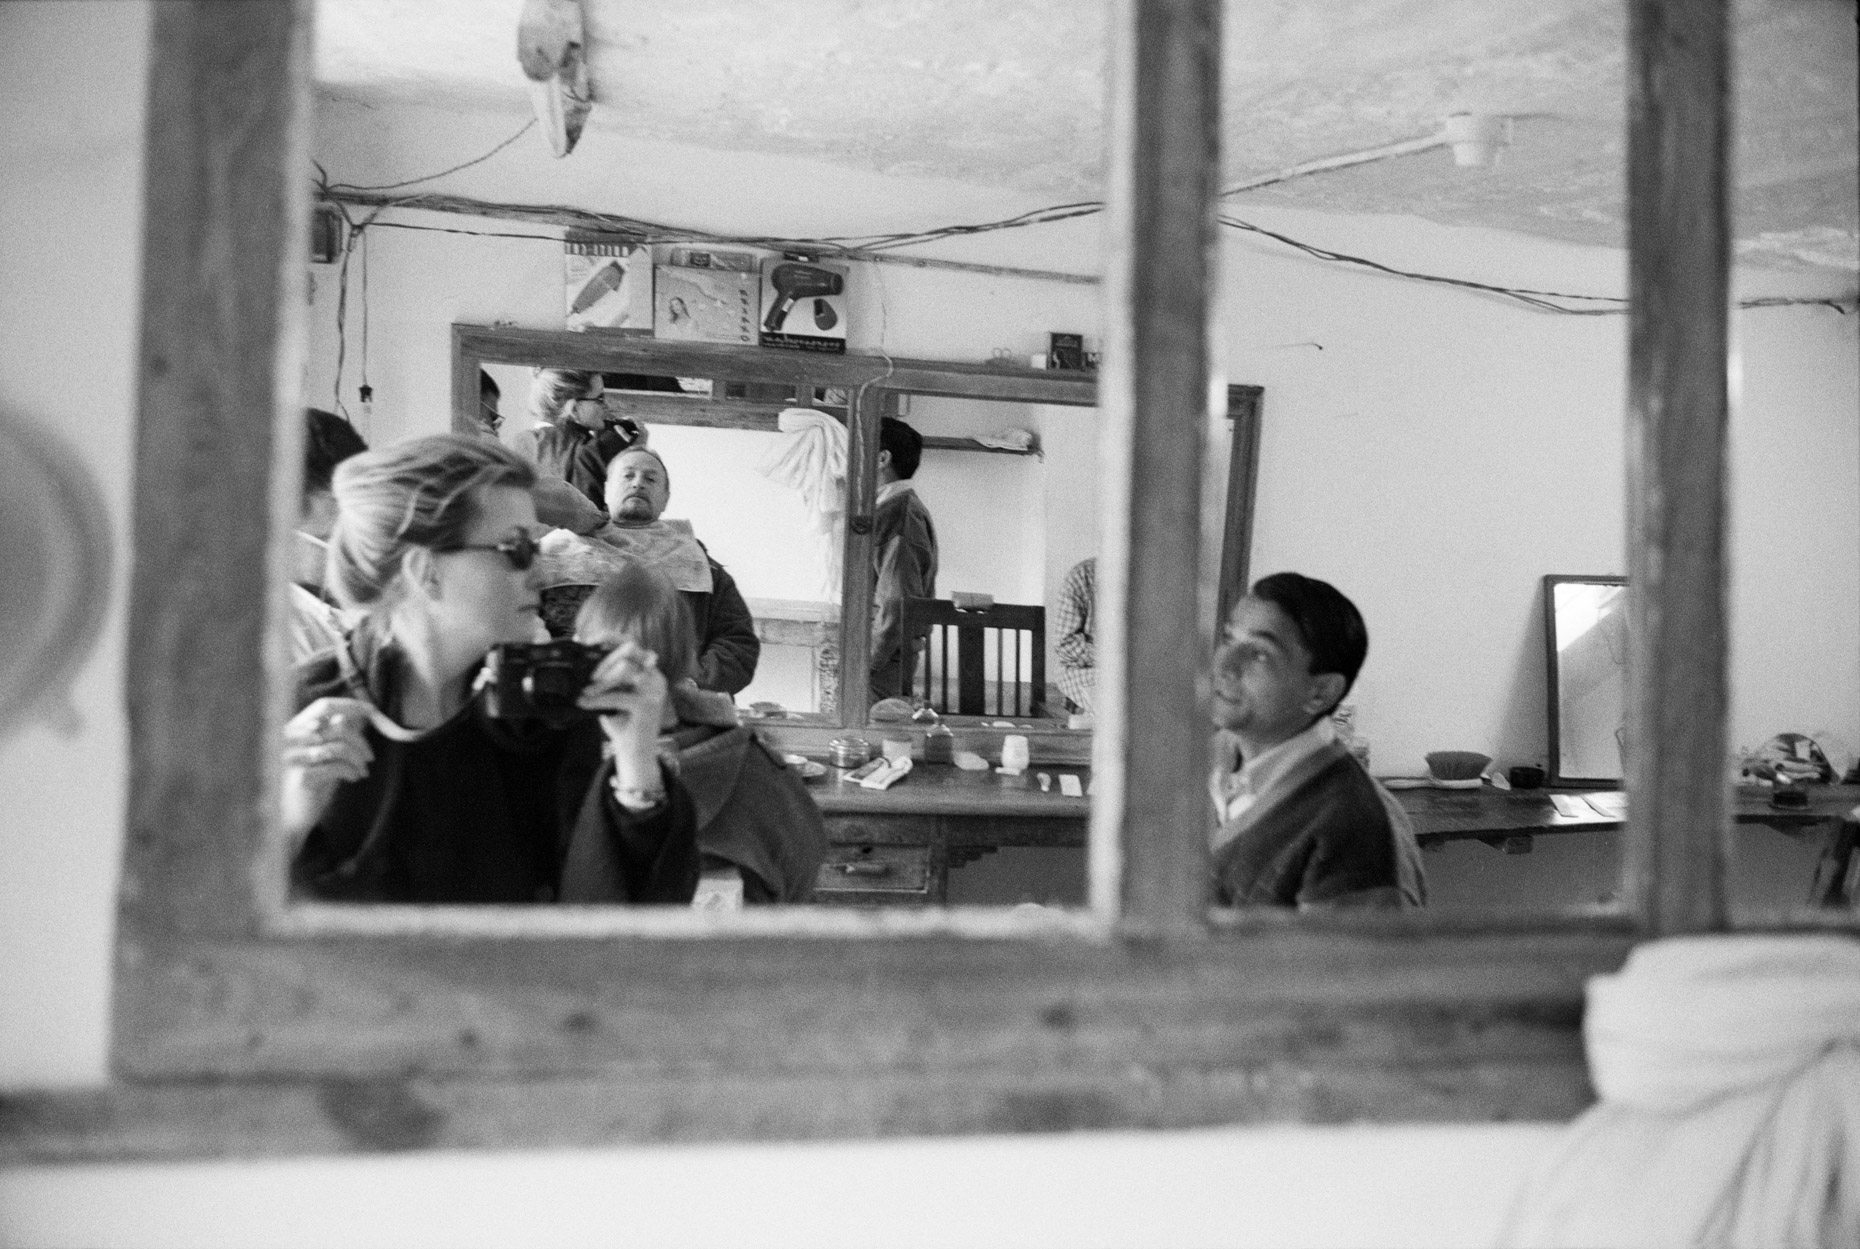 Barber Shop, Jaisalmer